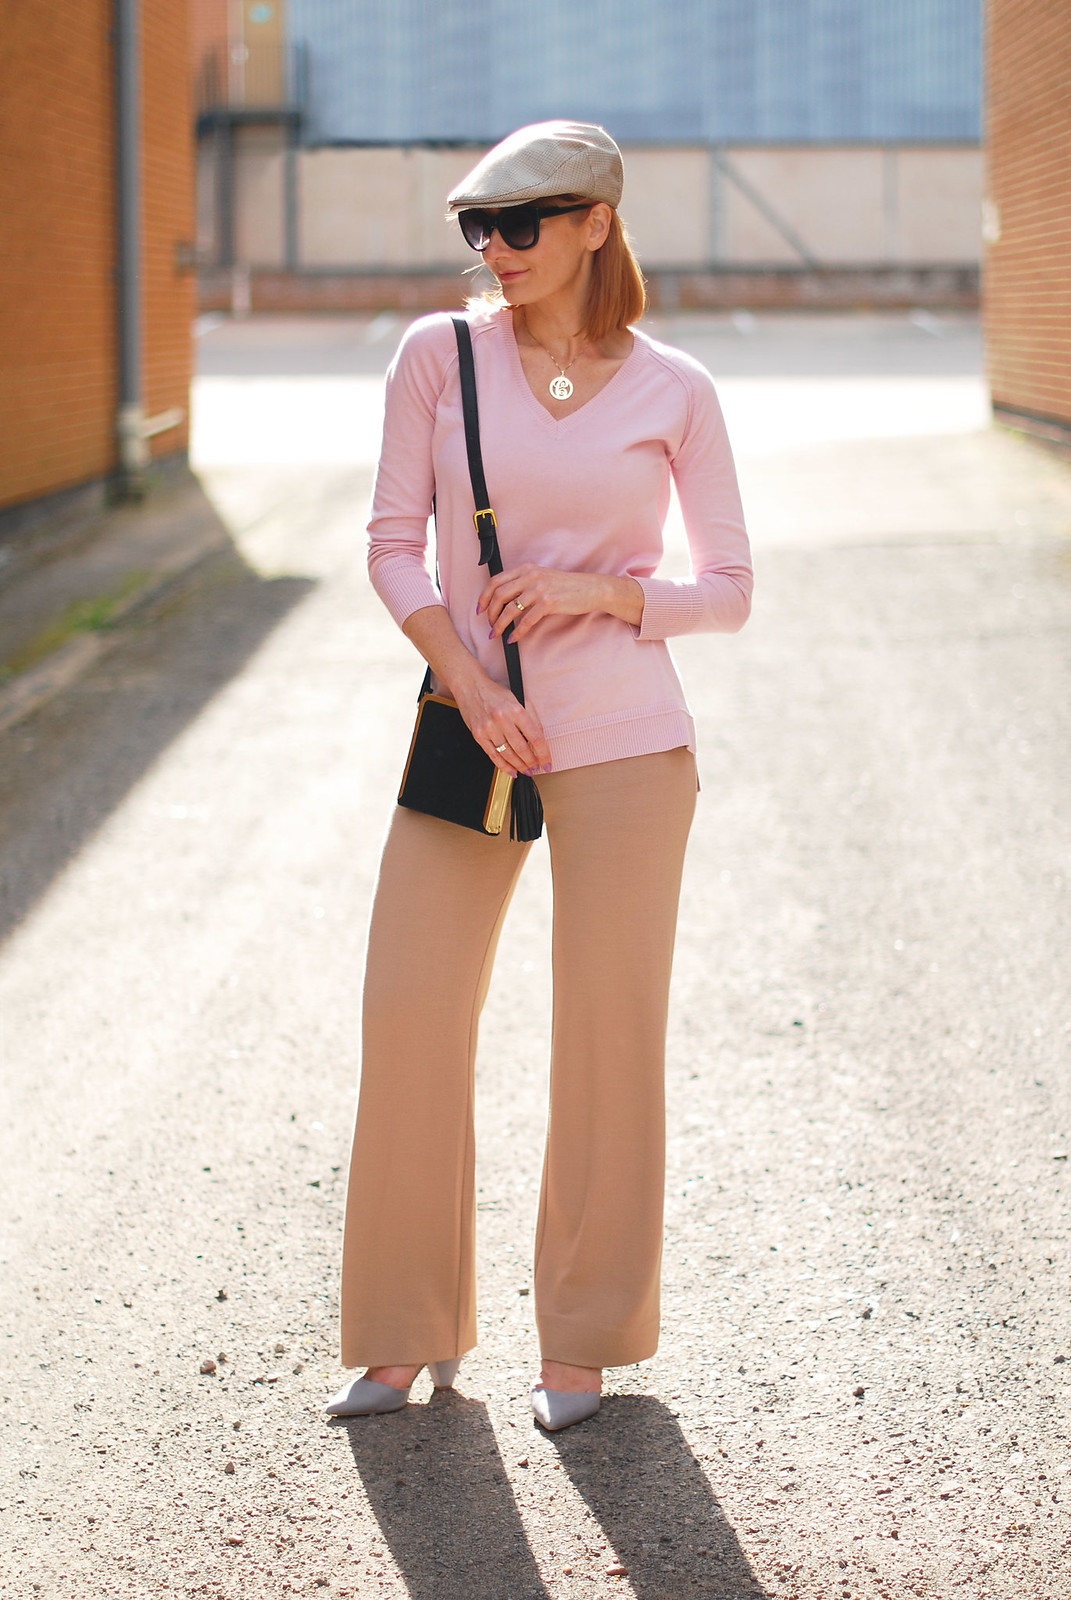 Winser London pale pink sweater, camel wide leg trousers, black cross body bag, flat cap, grey heels | Not Dressed As Lamb